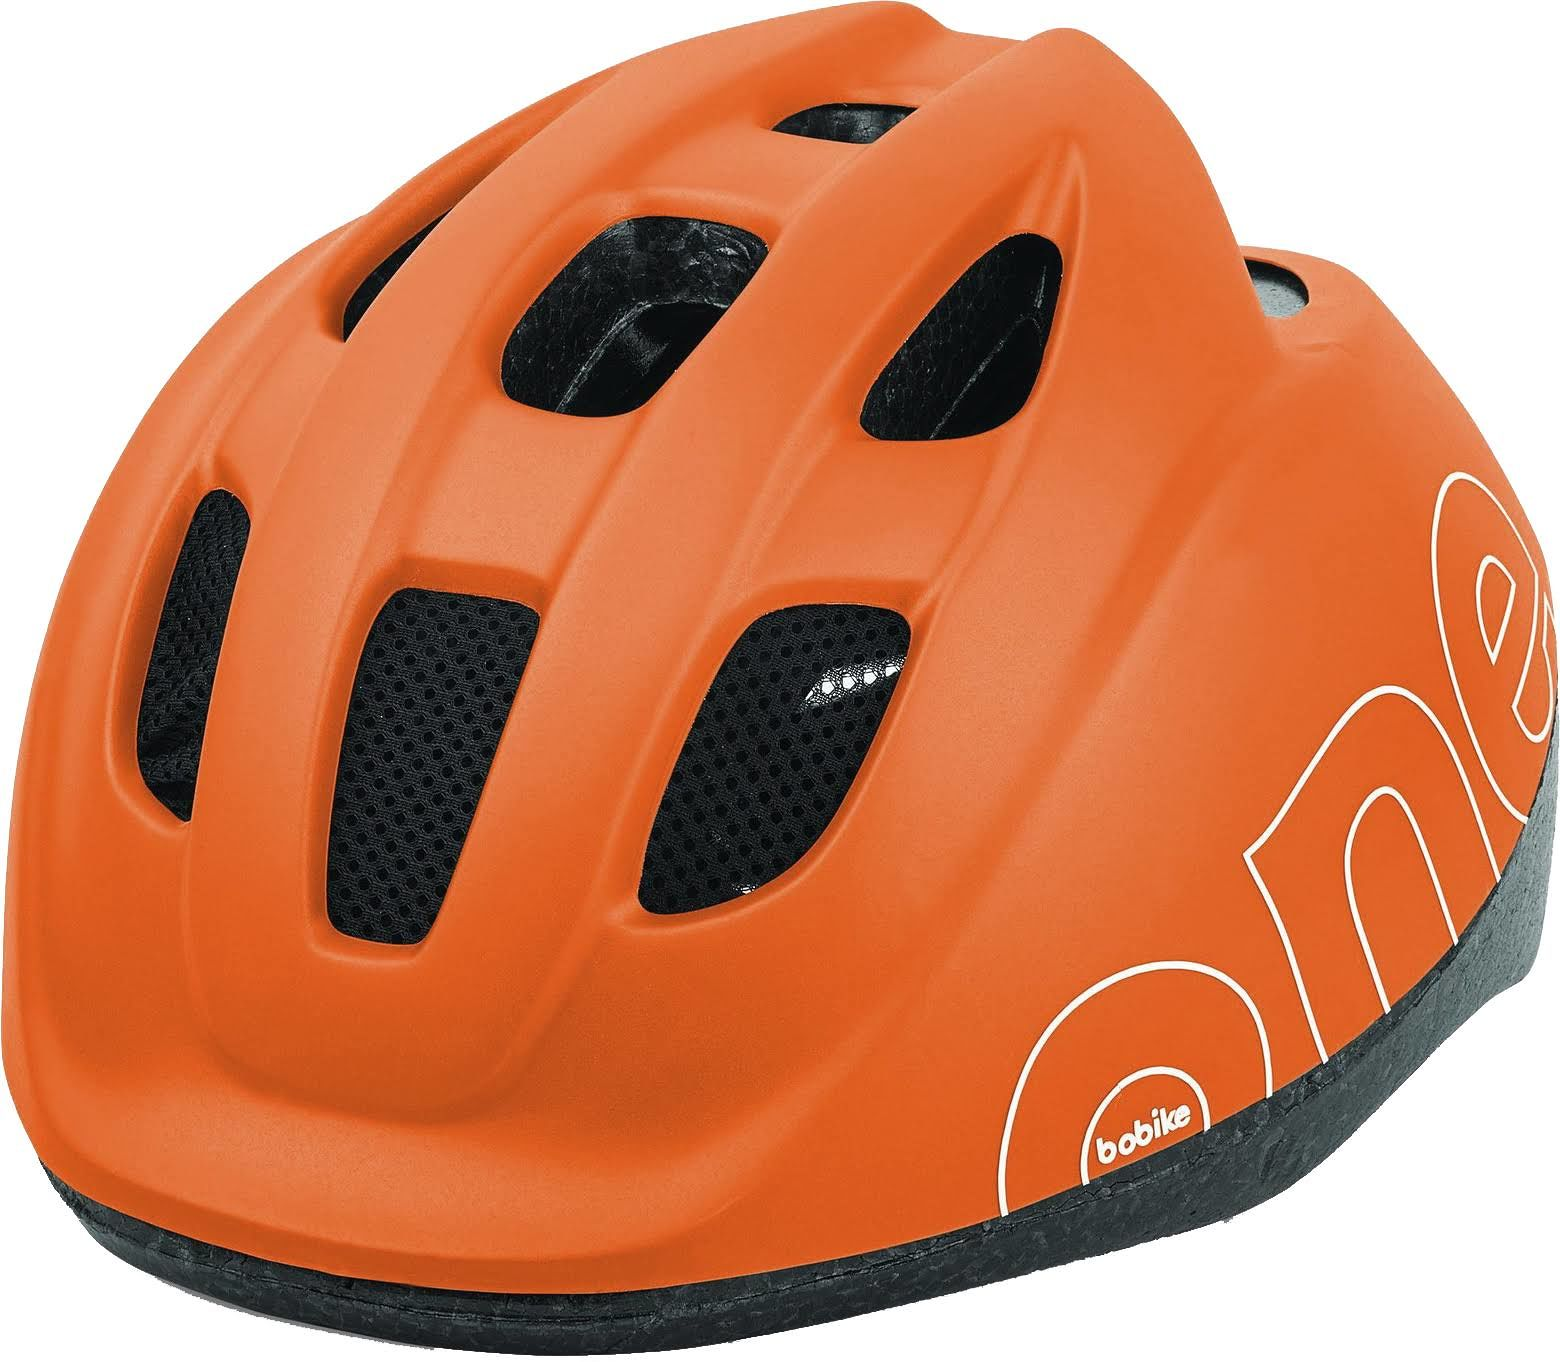 CAPACETE BOBIKE ONE CARAMELO XS 46/53CM